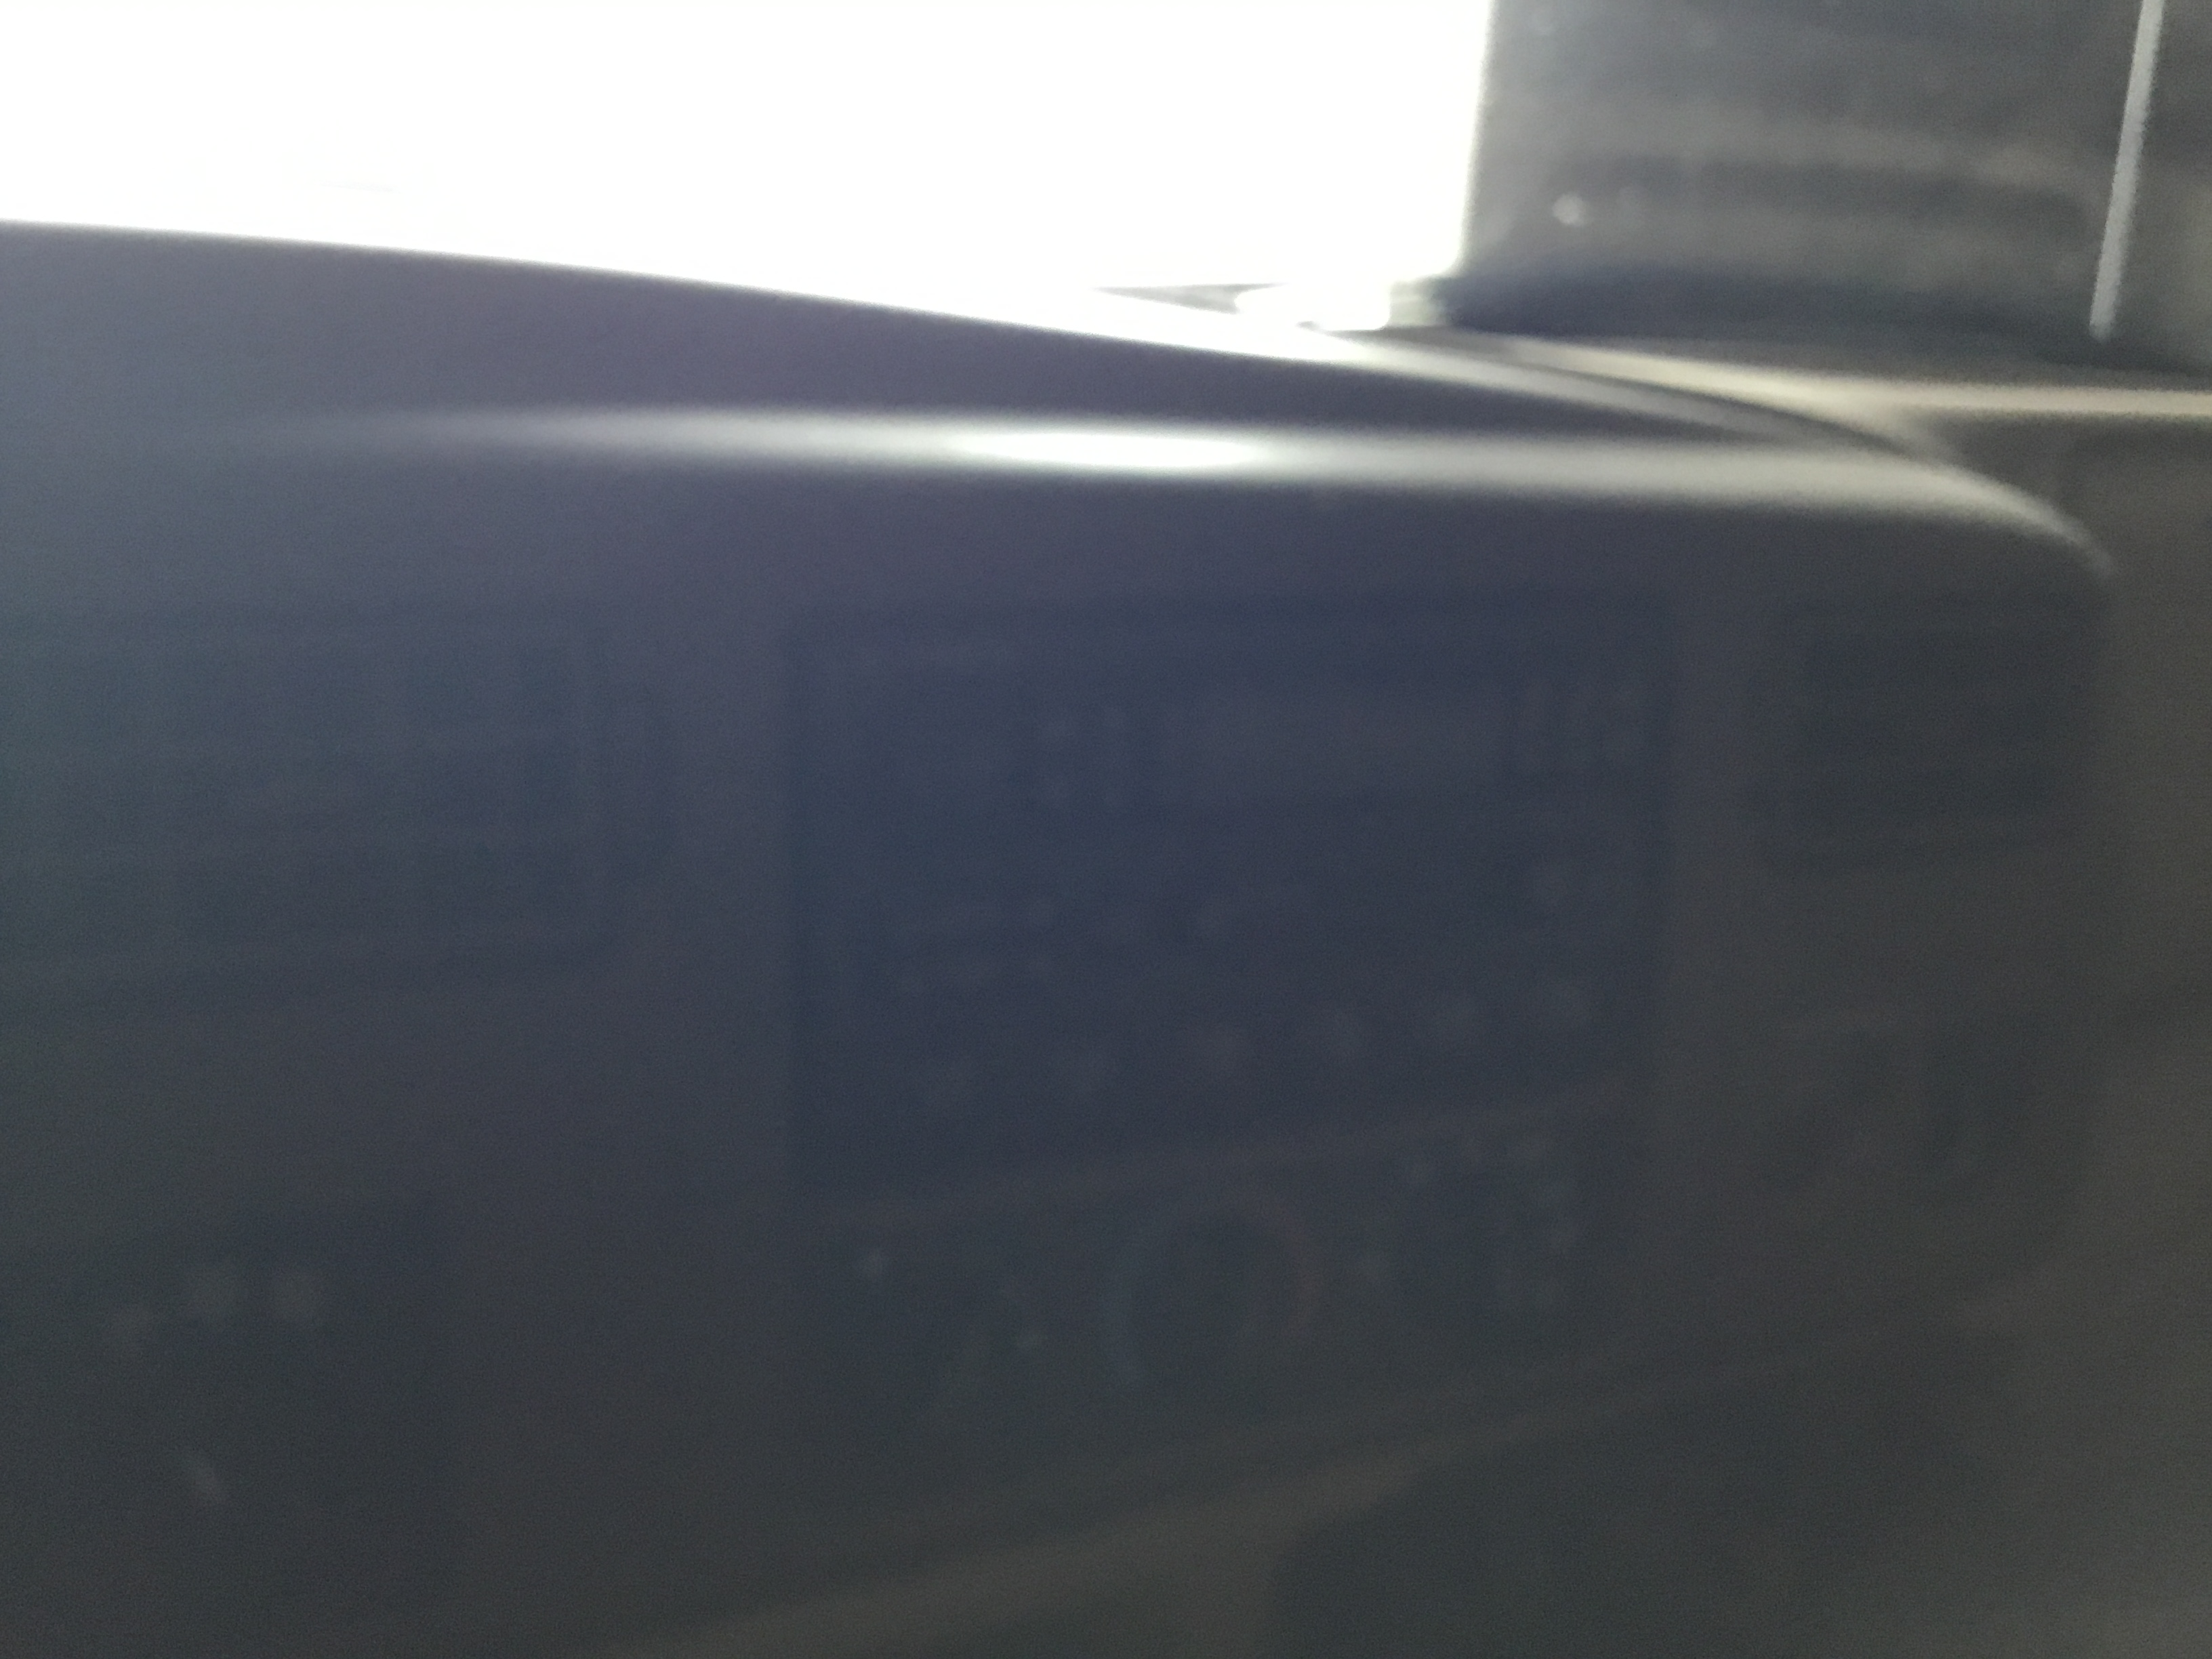 1999 Ford F-250 Lariat Extended Cab, 7.3 Power Stroke Diesel, 4x4, Cab&Chasis, Vin 1FTNX21FOXEB72445 - Image 9 of 13